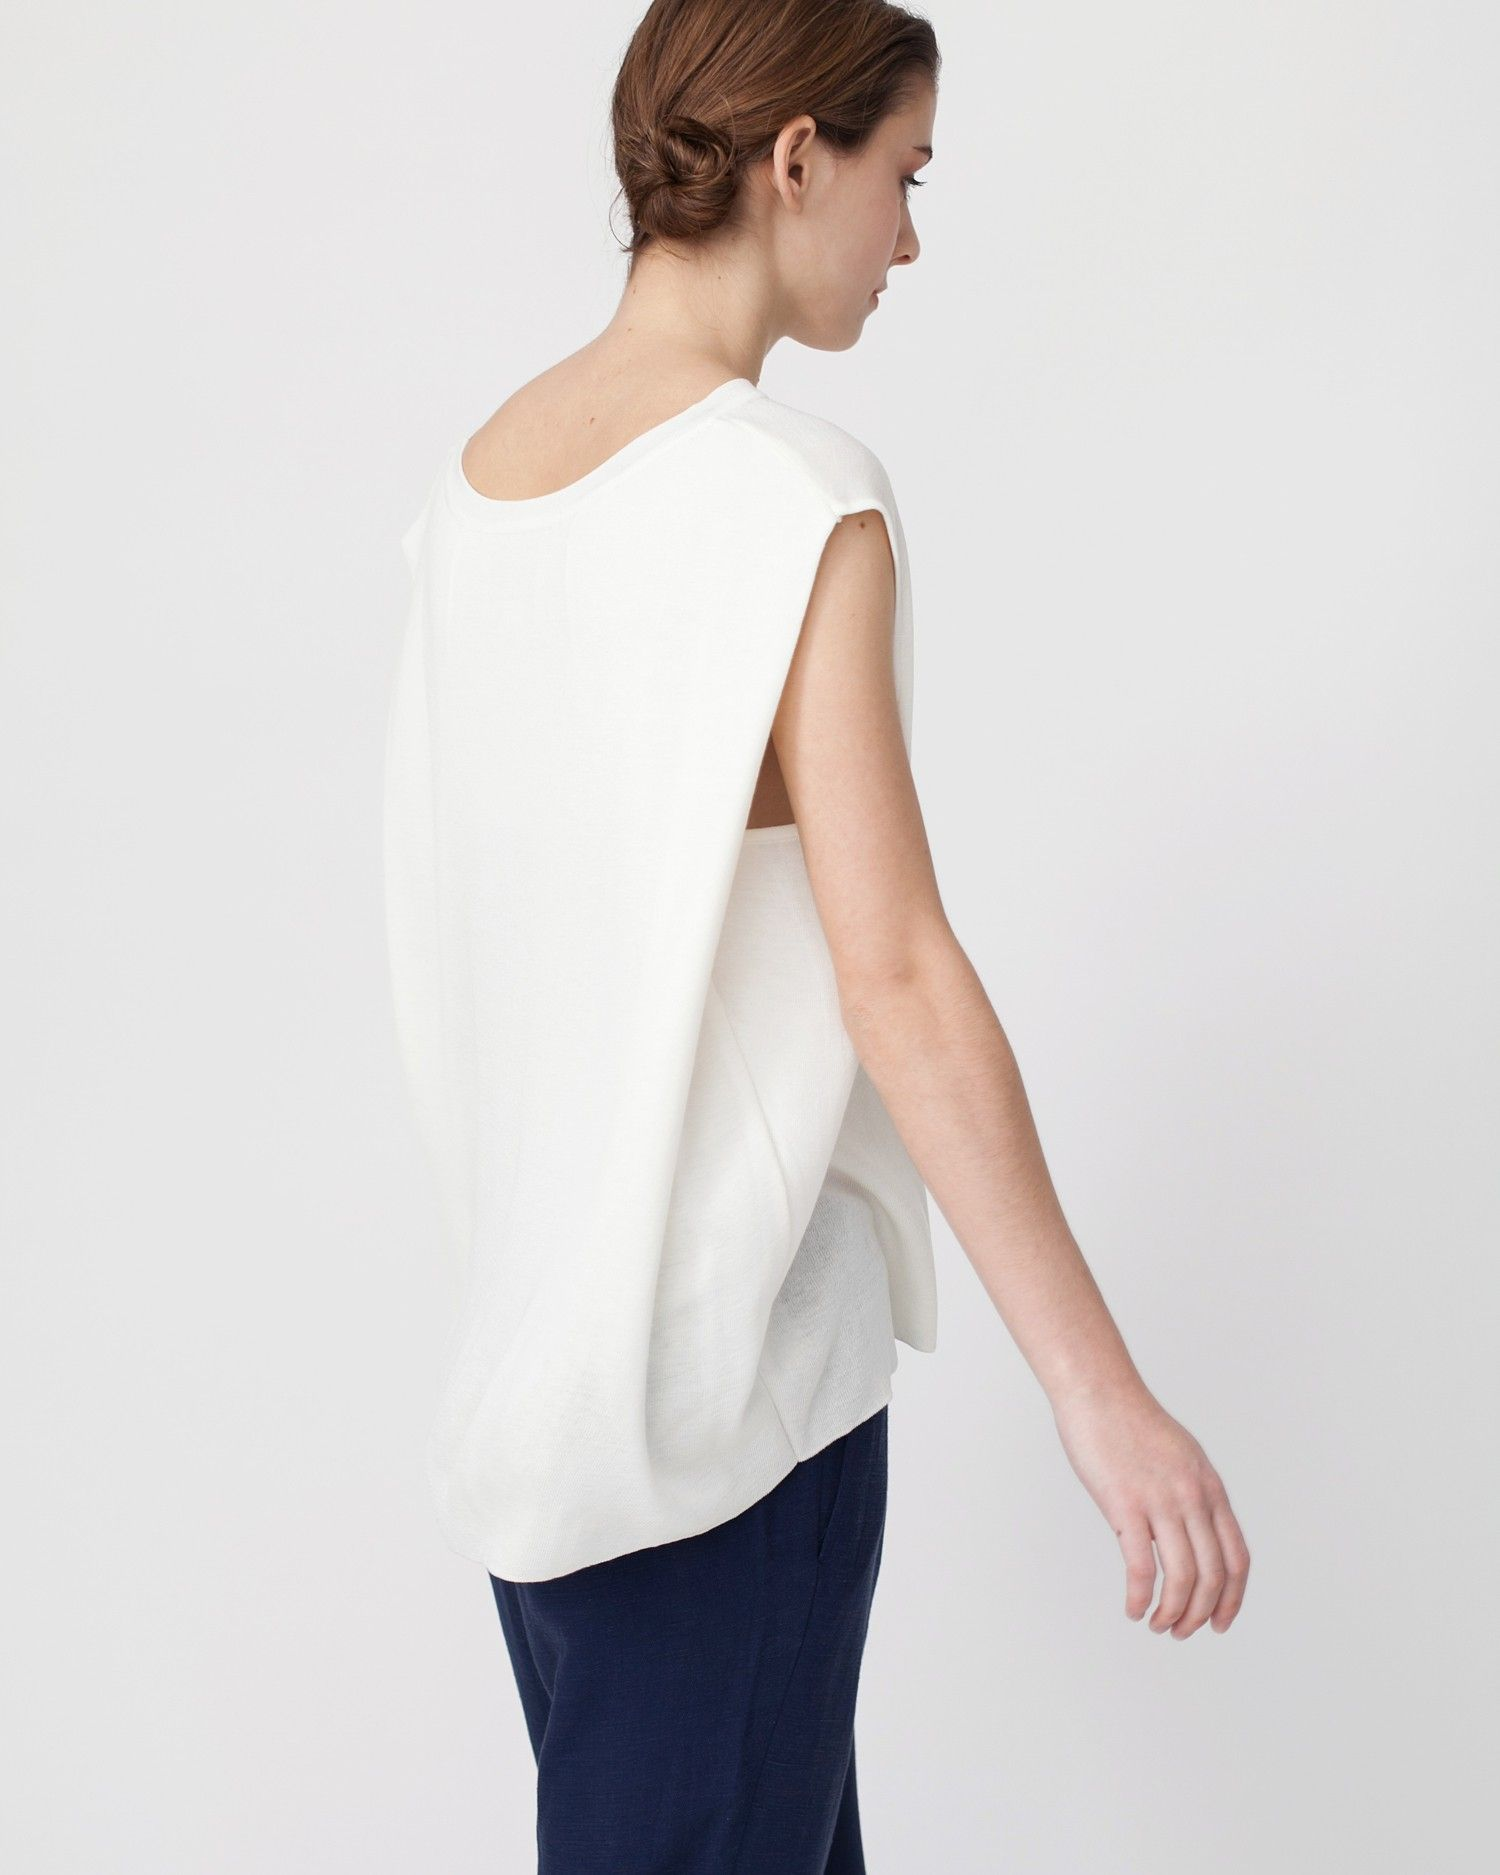 Linen knit top with folded sides